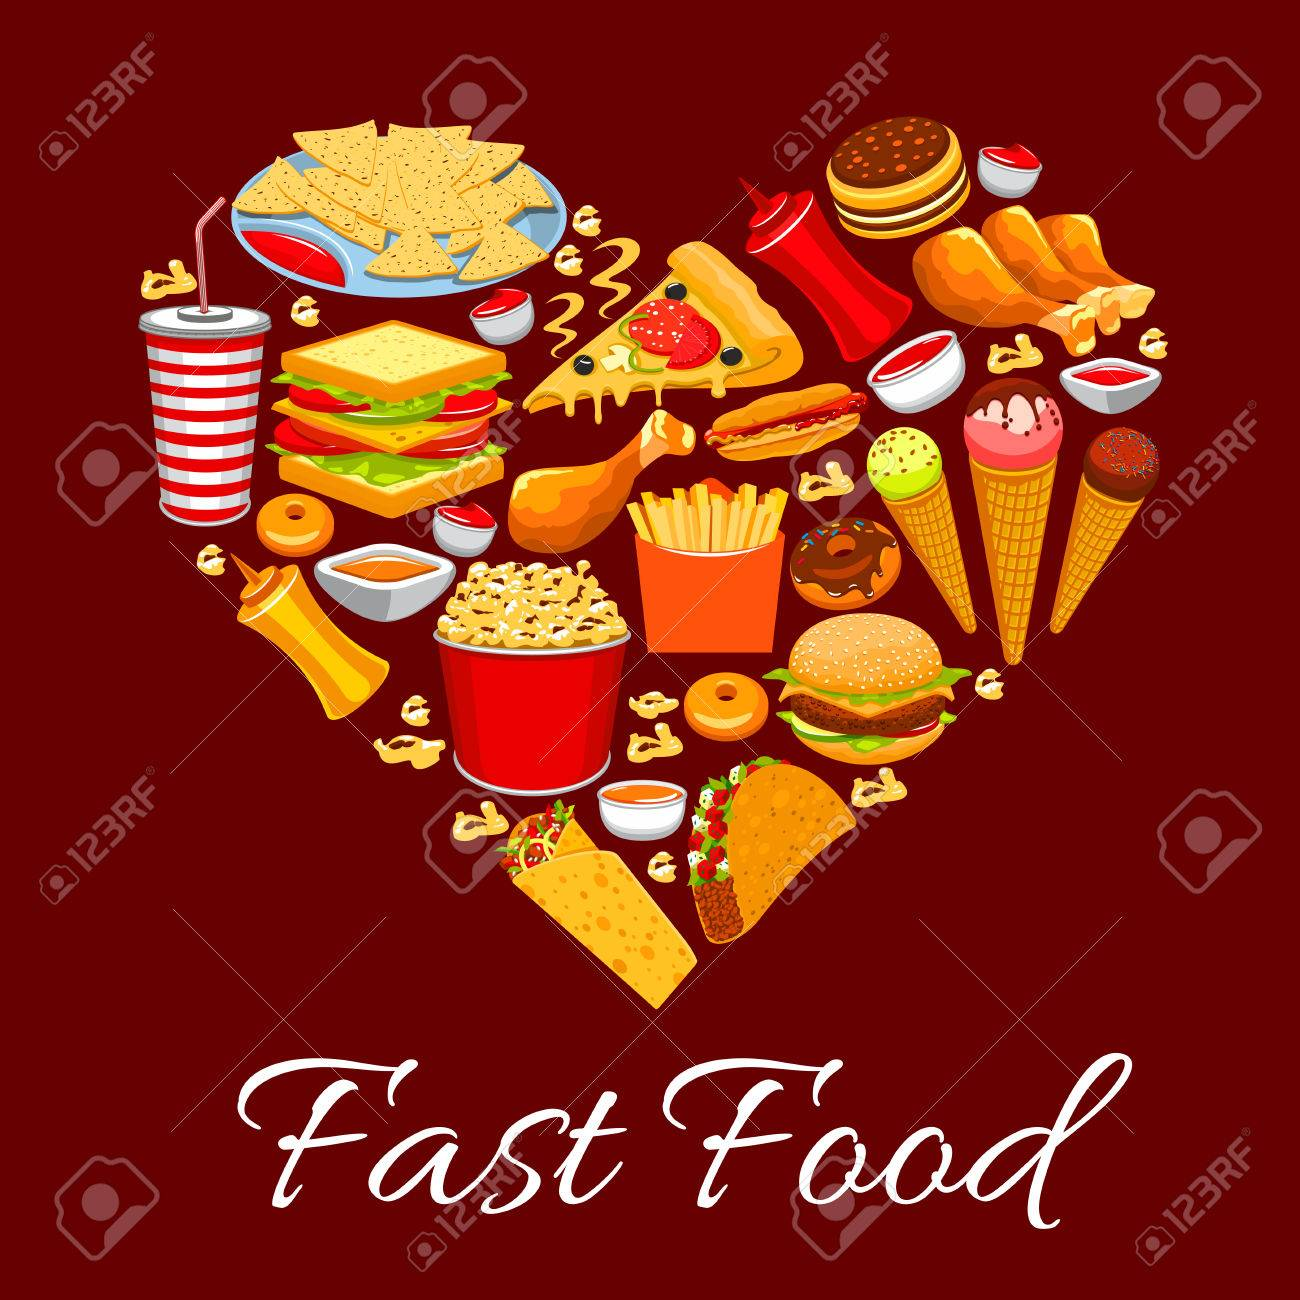 Fast Food Poster Heart Of Vector Fast Food Cheeseburger French